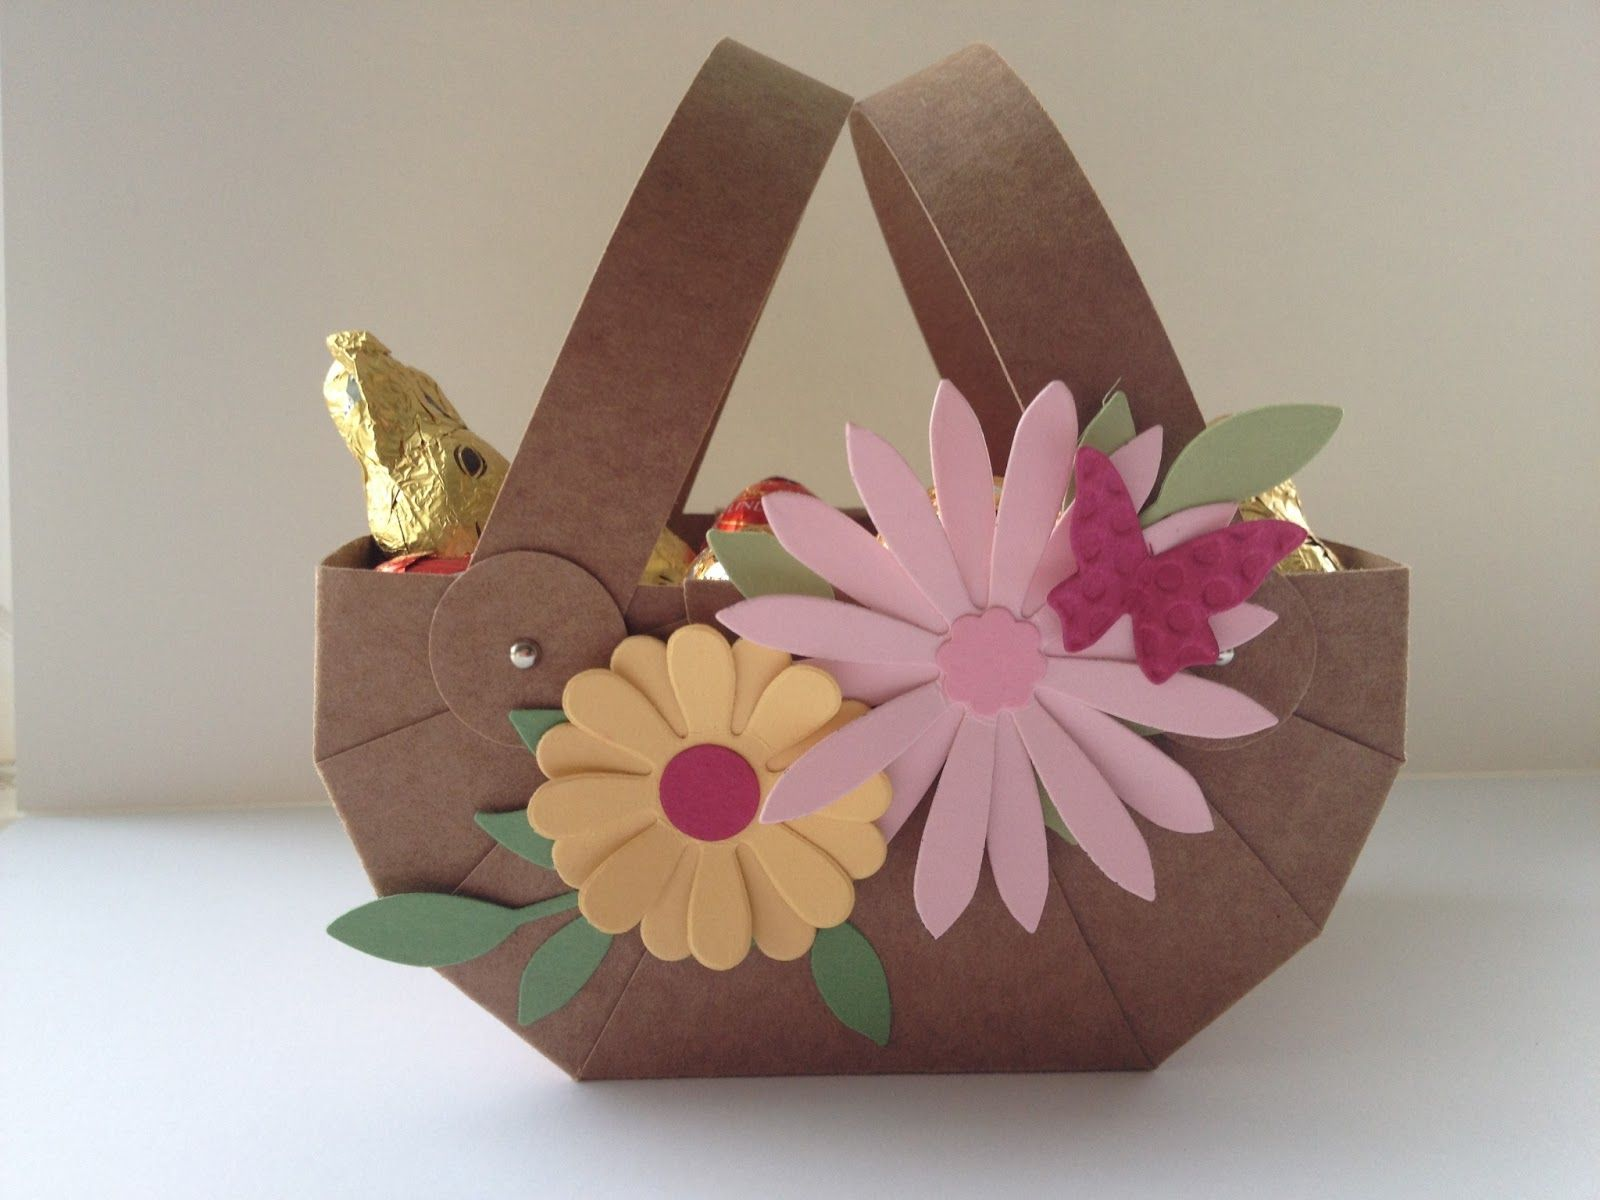 Easter basket decorated with flowers made with Blossom Party die from Stampin' Up!